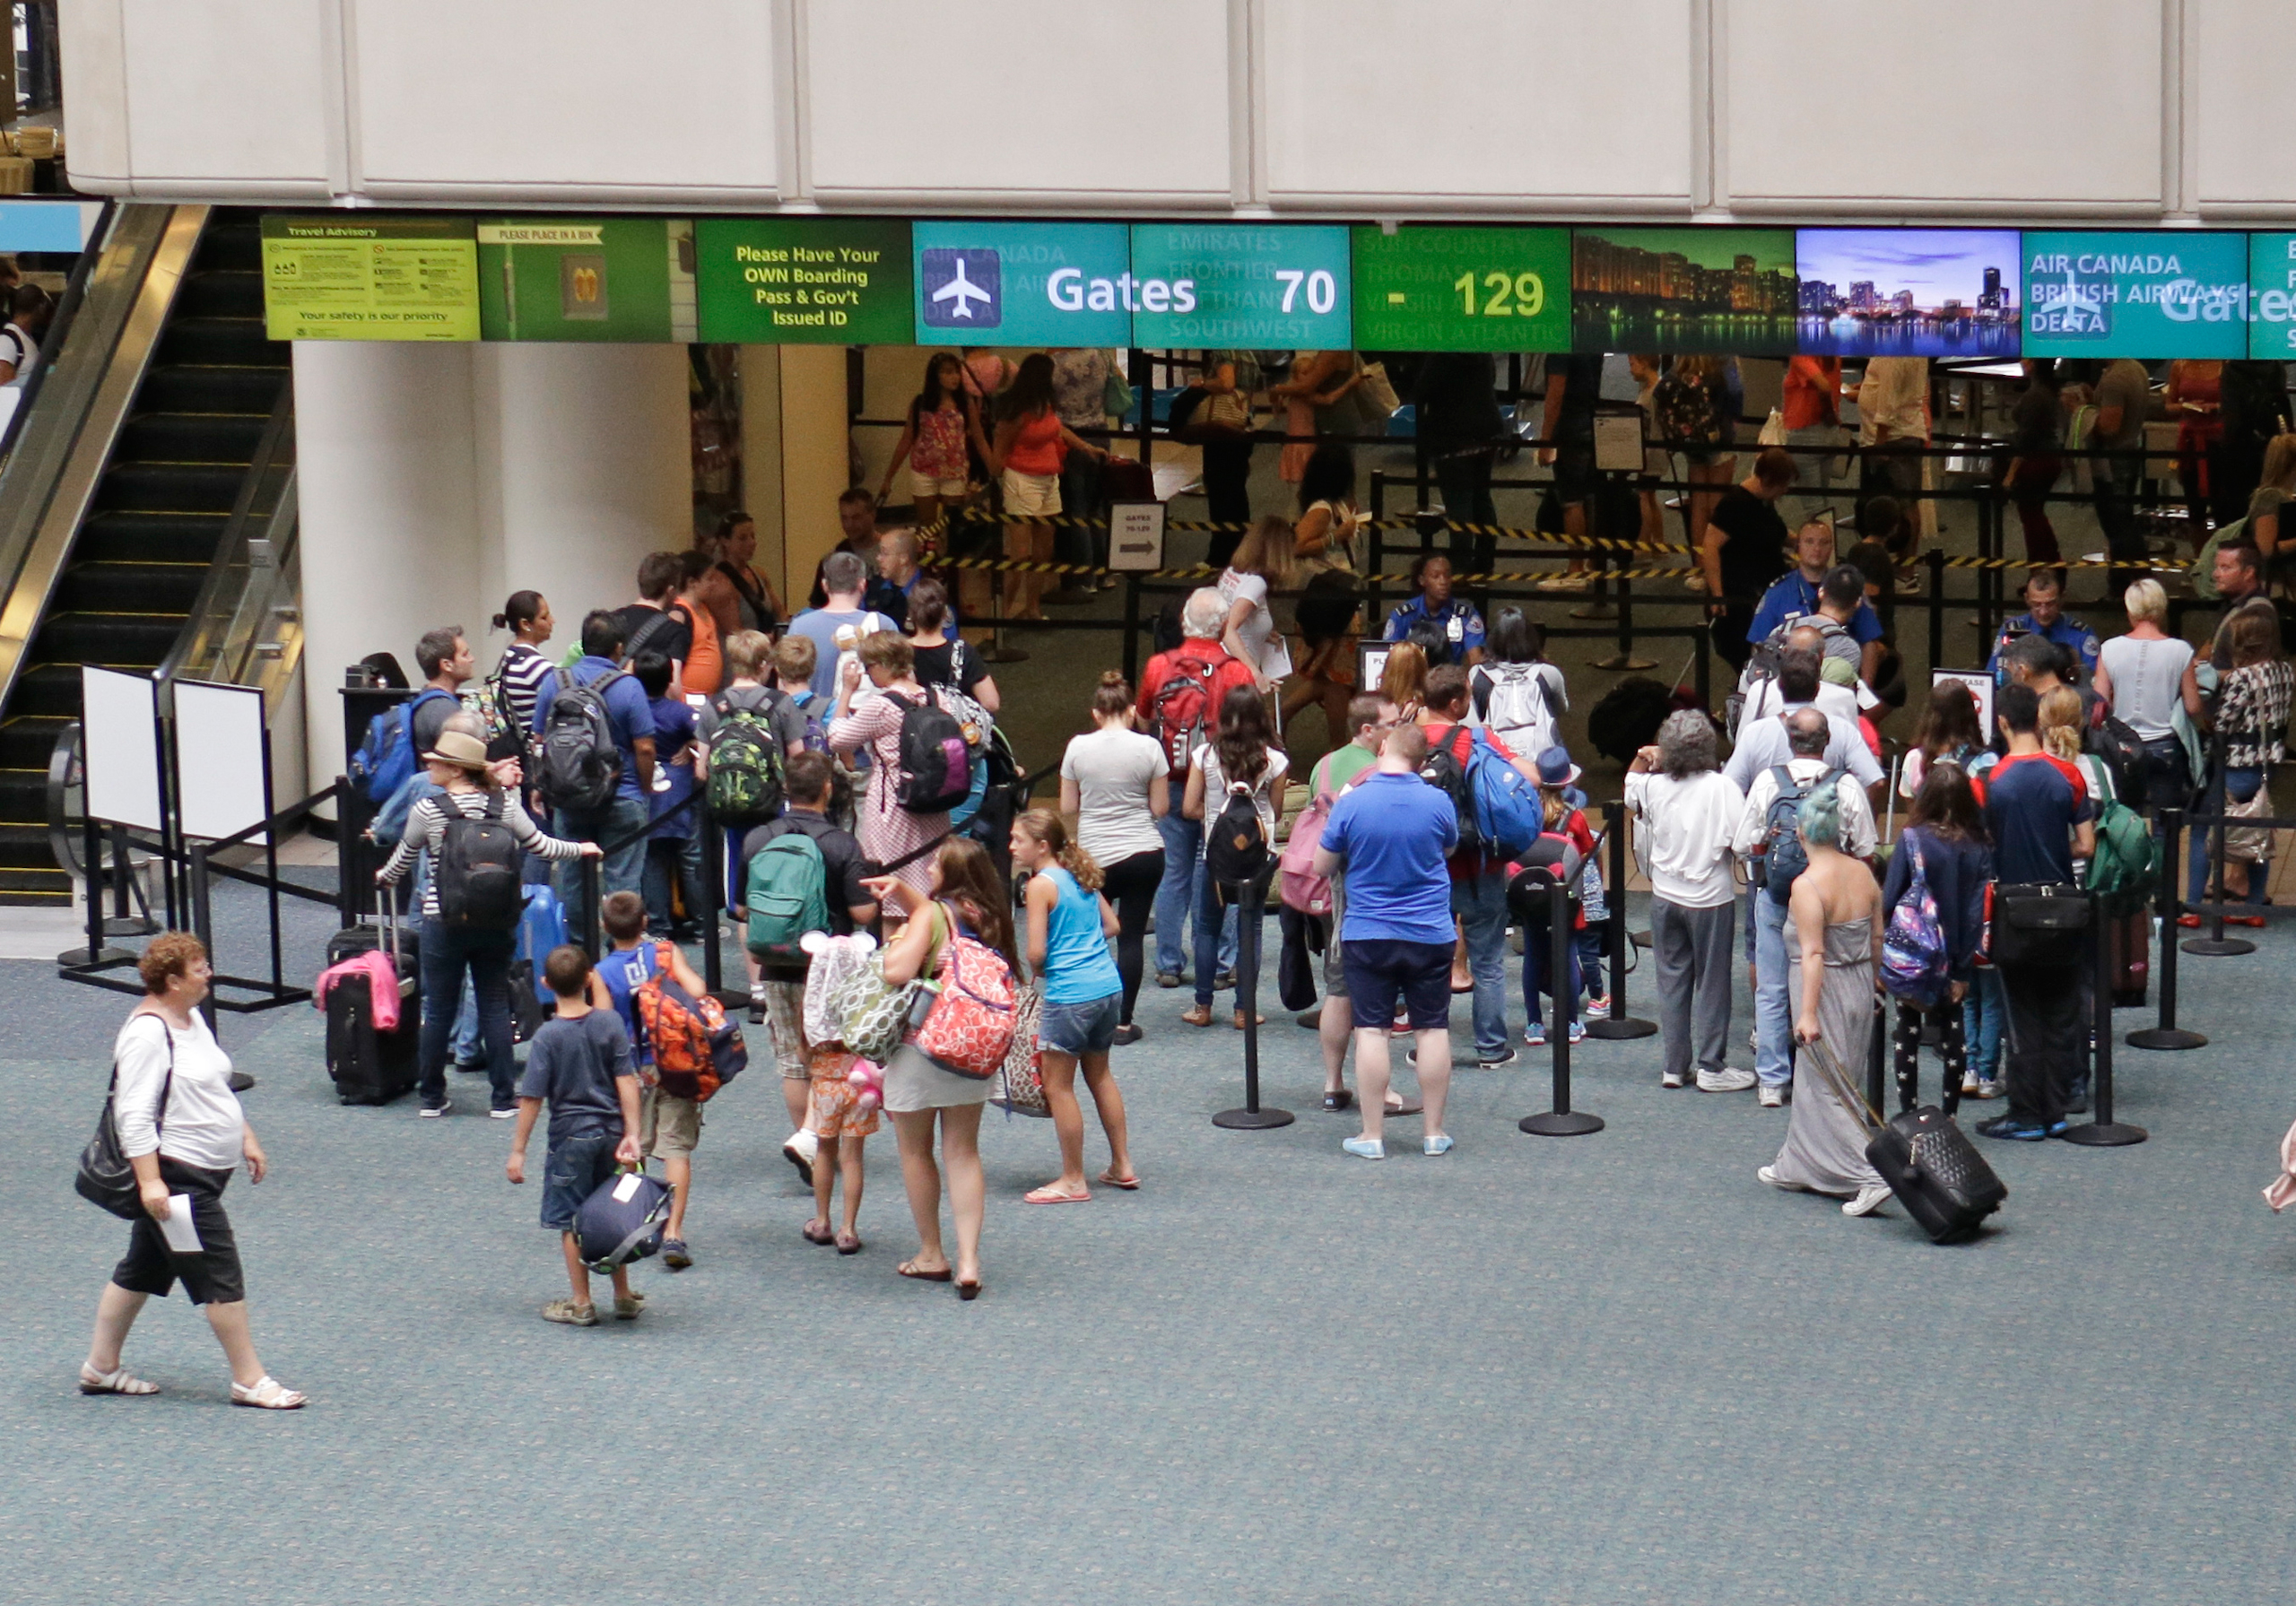 In this Monday, Aug. 31, 2015 photo, passengers line up at security check points before heading to their departure gates at Orlando International Airport in Orlando, Fla. The state's second-busiest airport has embarked on a $1.1 billion expansion, the largest in two decades, for a new garage, check-in kiosks and a train terminal to service the privately funded All Aboard Florida line which will run from Orlando to Miami in two years. (AP Photo/John Raoux)